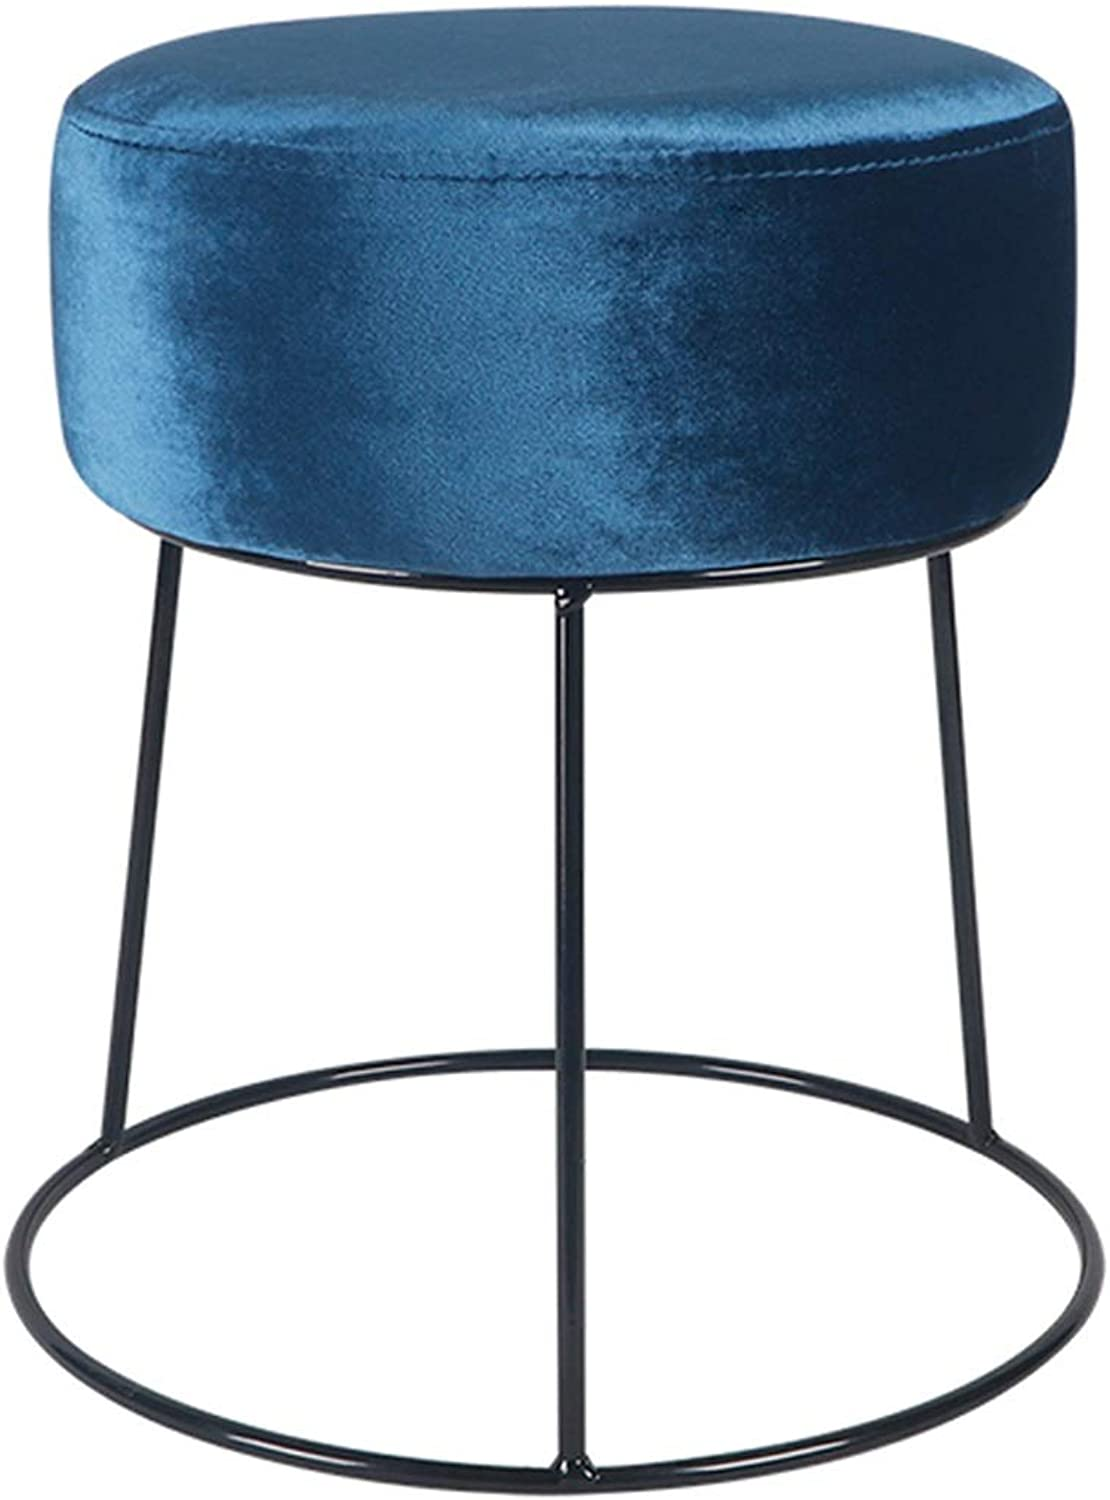 Simple Household Stool Fabric Stainless Steel Living Room Change shoes Stool Creative Dressing Table Stool Modern